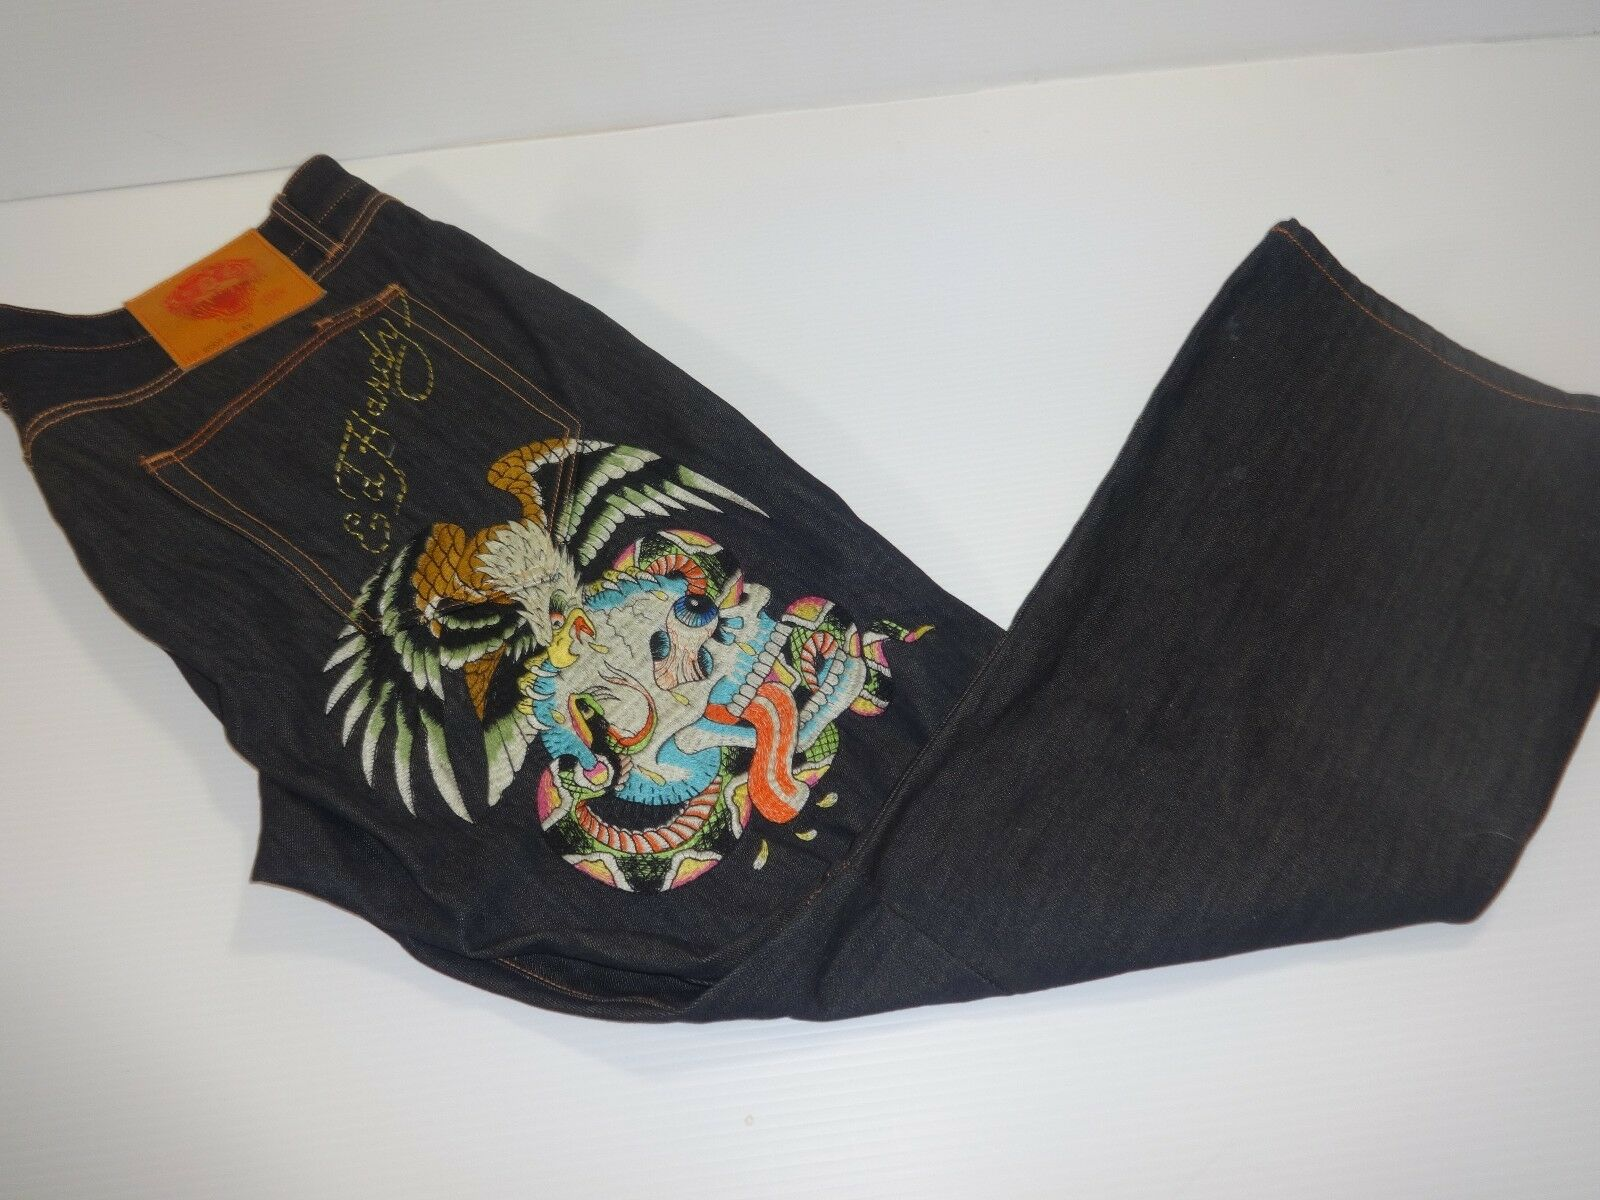 Mens Ed Hardy by Christian Audigier Embroidered Button Fly Jeans - Size 40x32